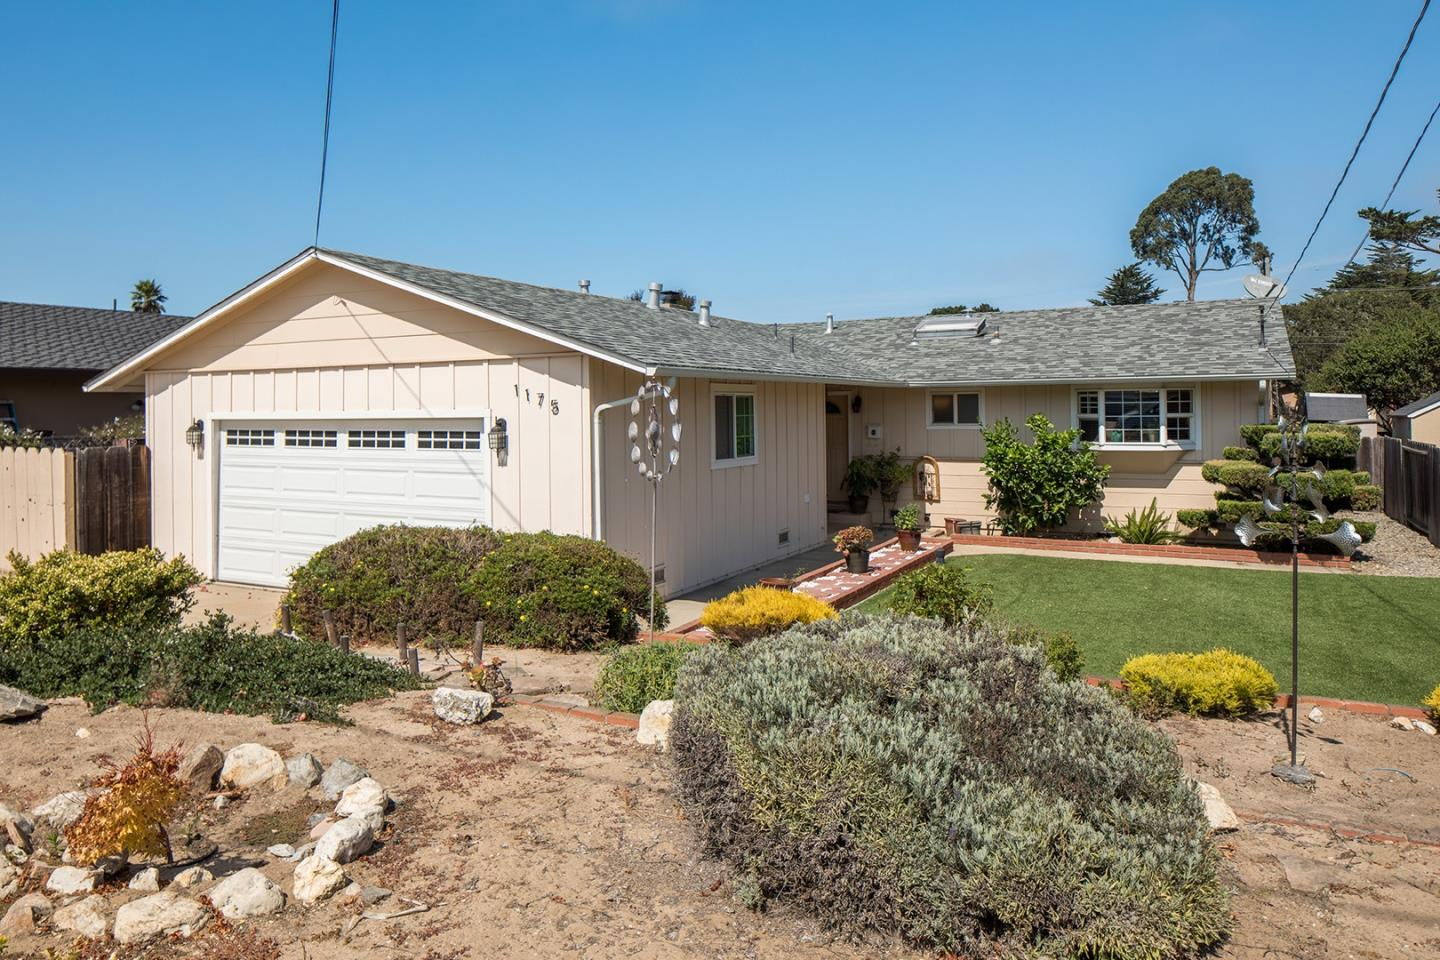 Photo of 1175 Santa Ana ST, SEASIDE, CA 93955